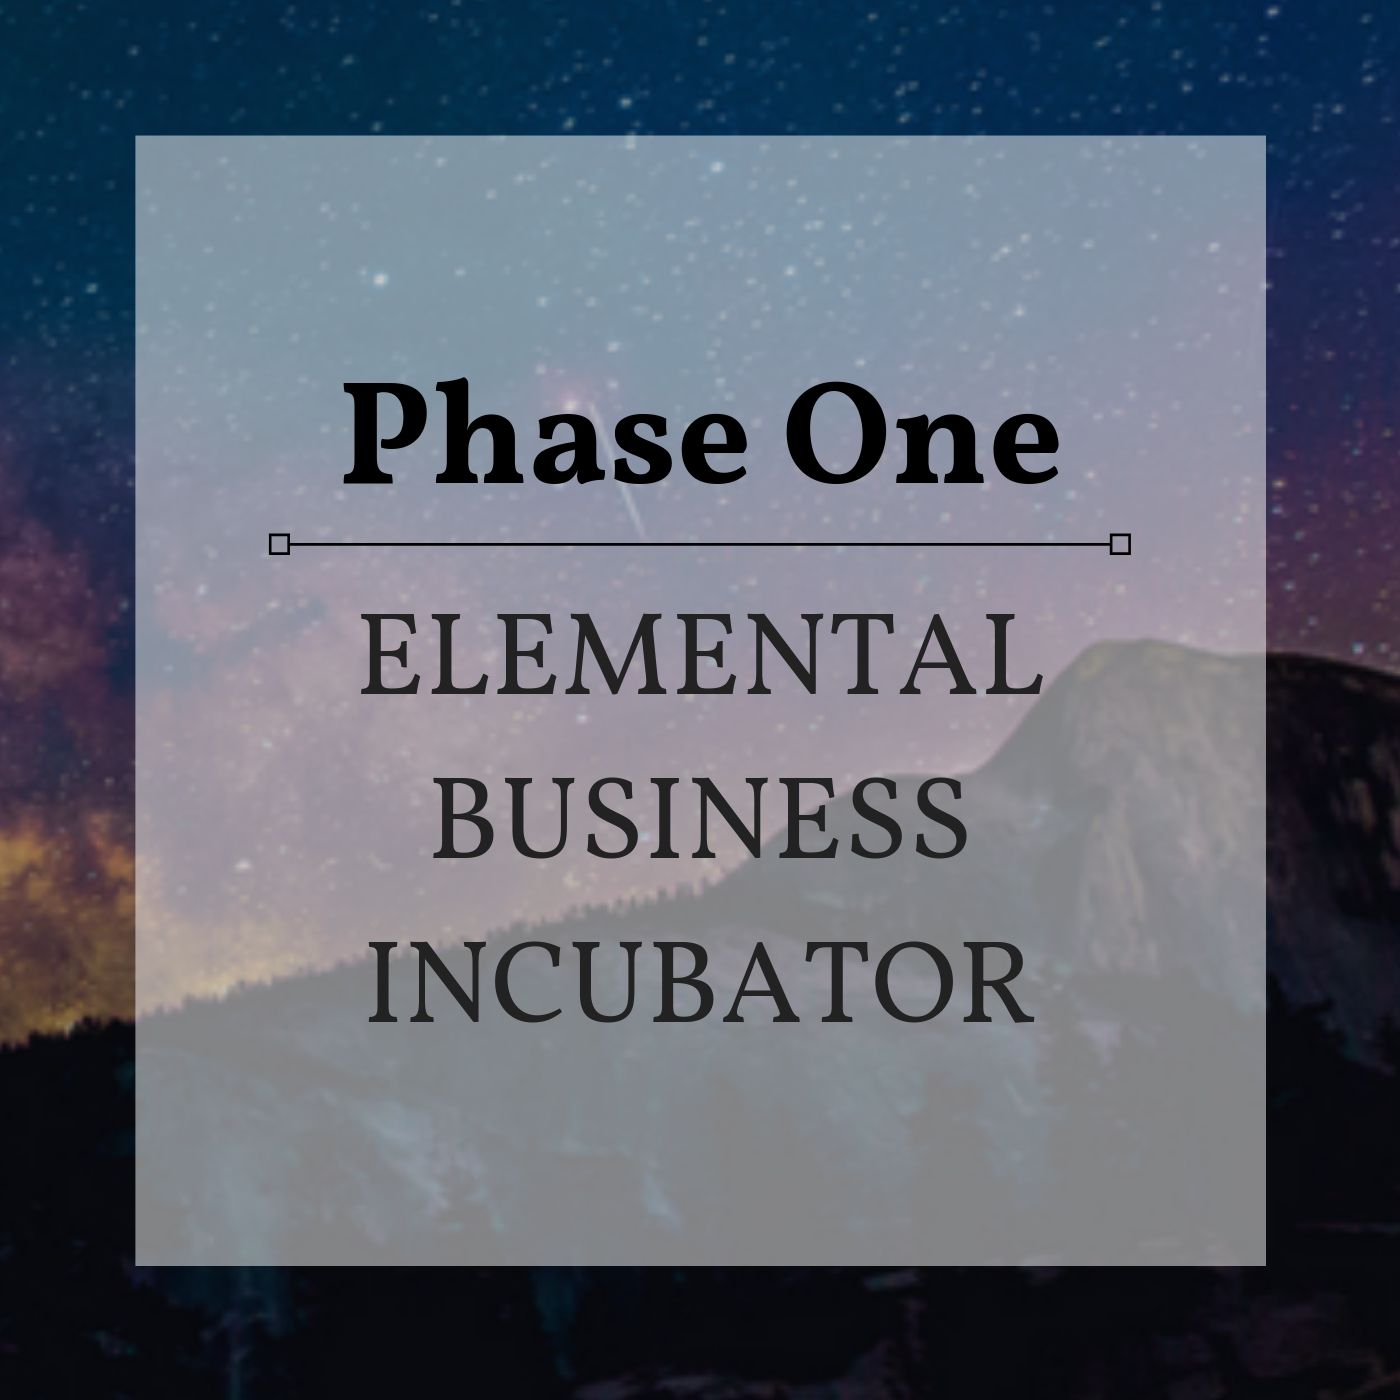 - Phase 1 is about a shift in the way you relate to marketing, sales, and more. It's about connecting to the soul of your business, understanding your strengths, and following the energy of what wants to happen. This is where your 1:1 calls with Steph are focused.